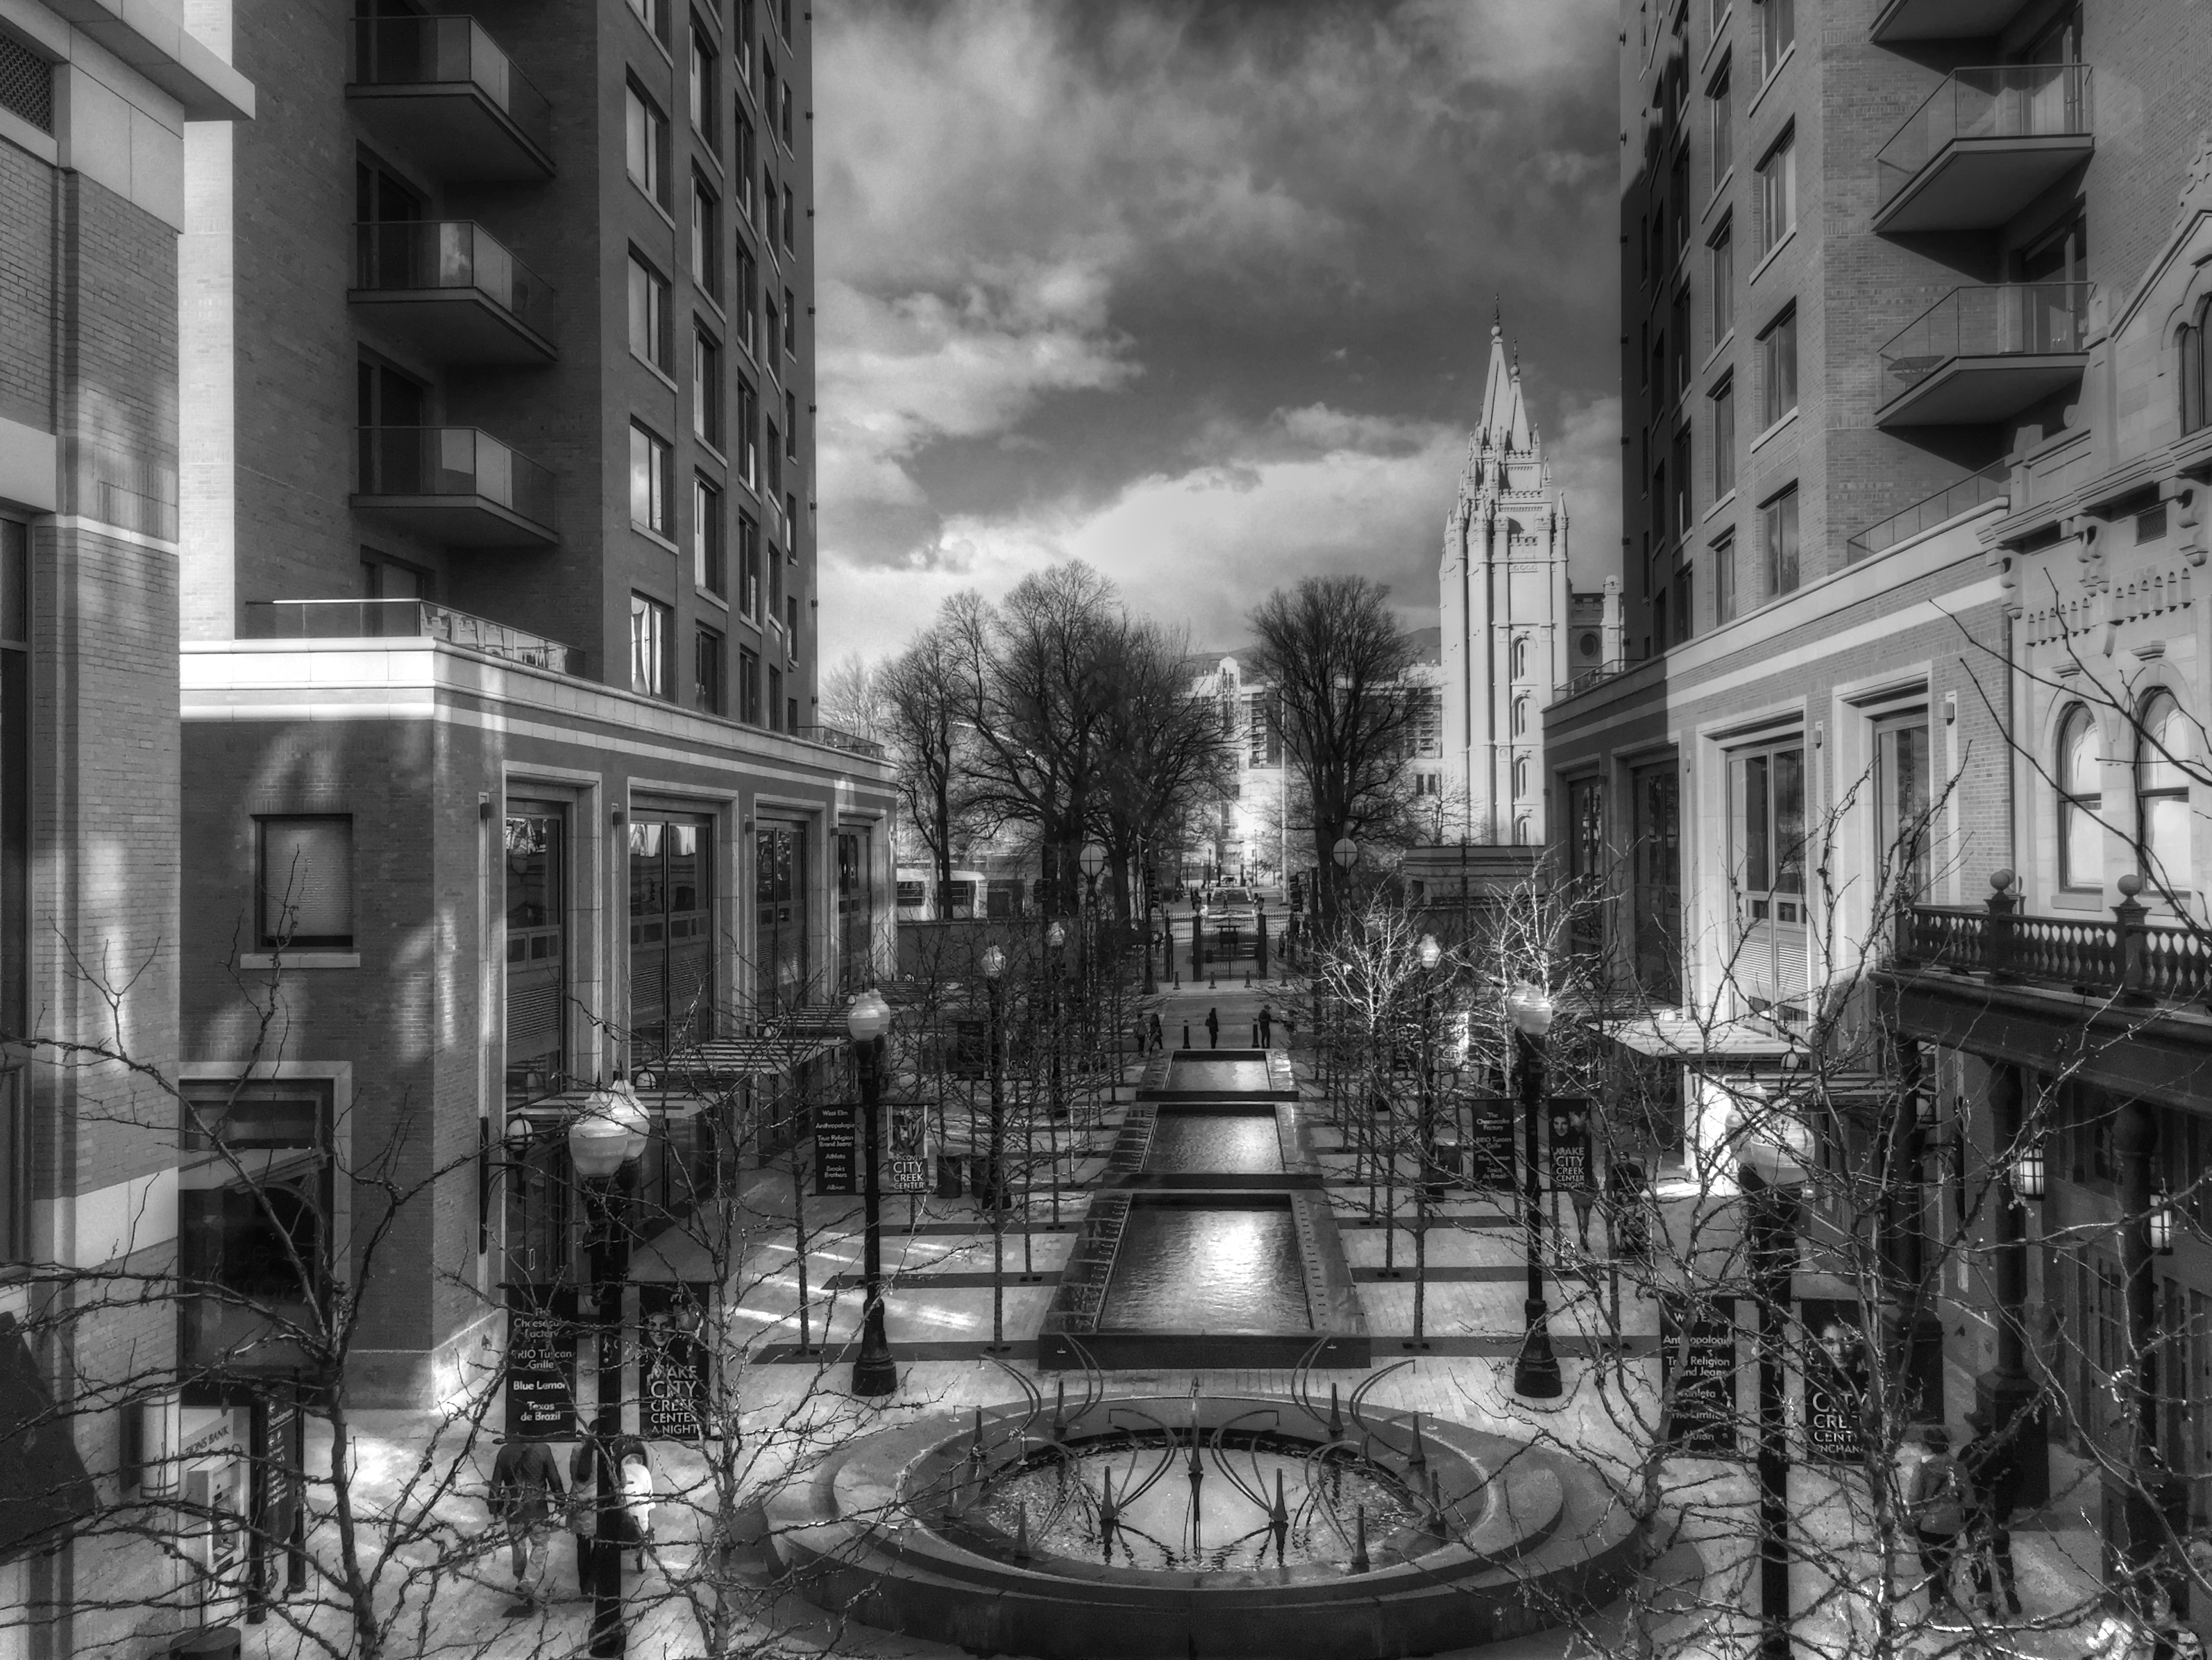 City Creek B&W